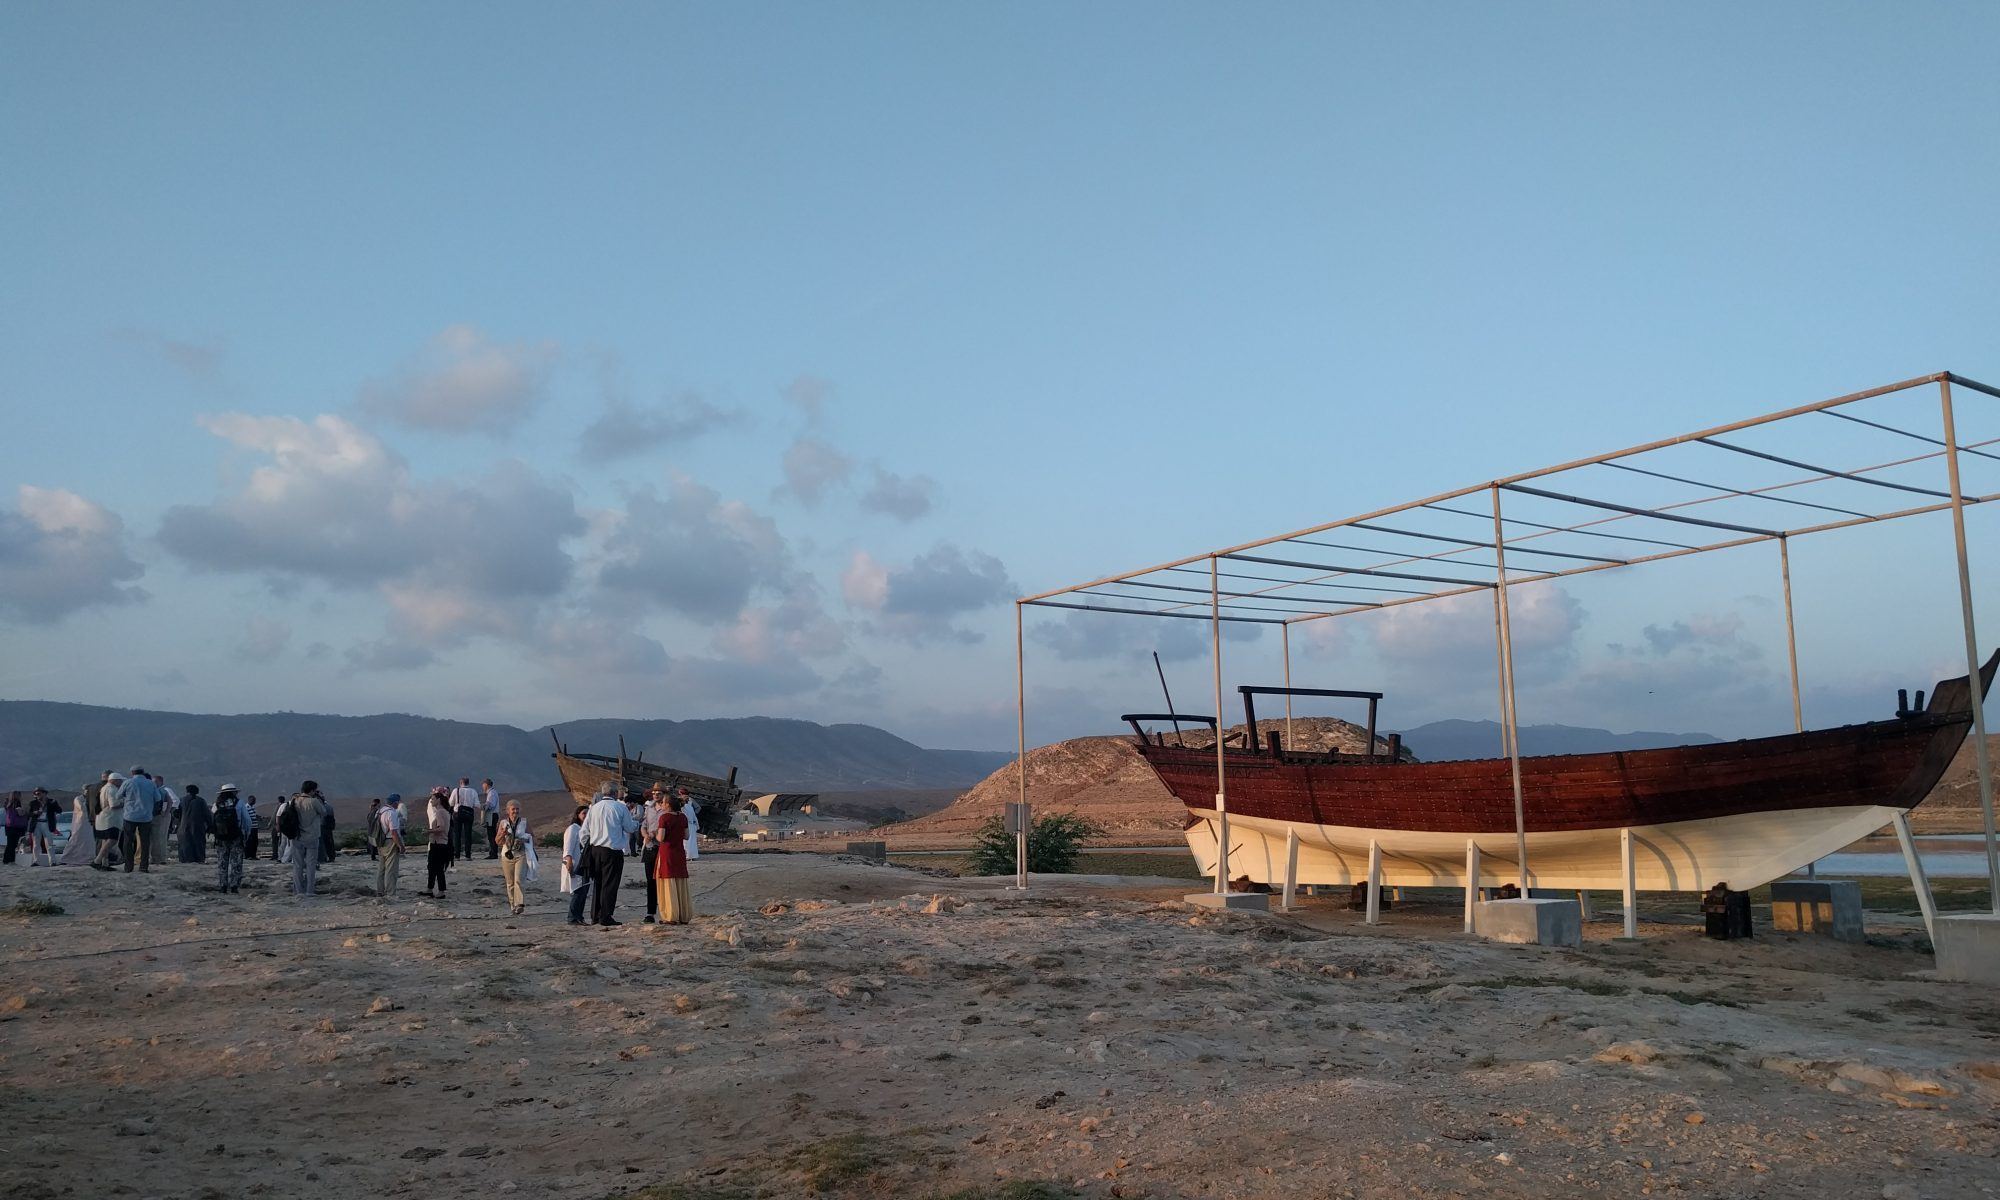 Working-conference: Development and Best Practices of (archaeological) Heritage Management as a Course